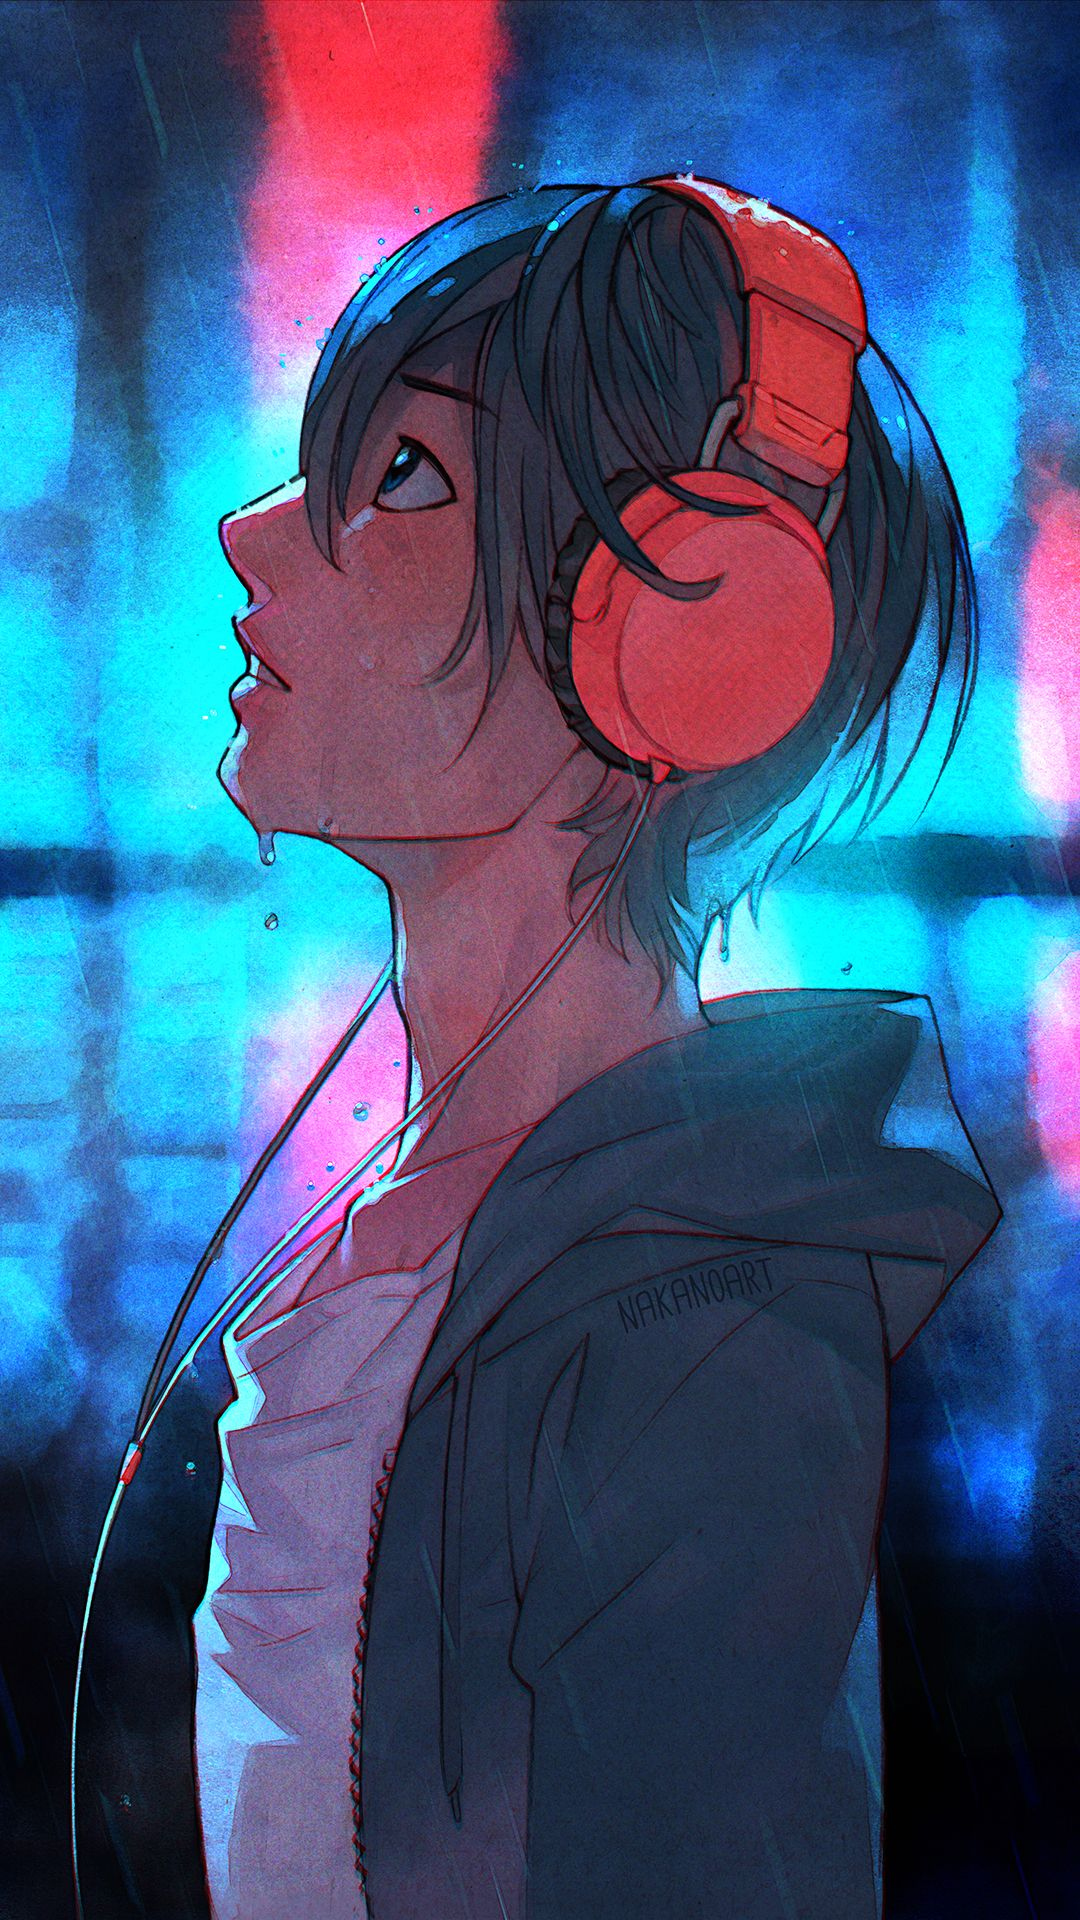 1boy O Black Hair Blush Cable Collarbone Denim Dripping Expressionless Free From Side Hair Between Eyes Headphones Art Anime Boy With Headphones Anime Music